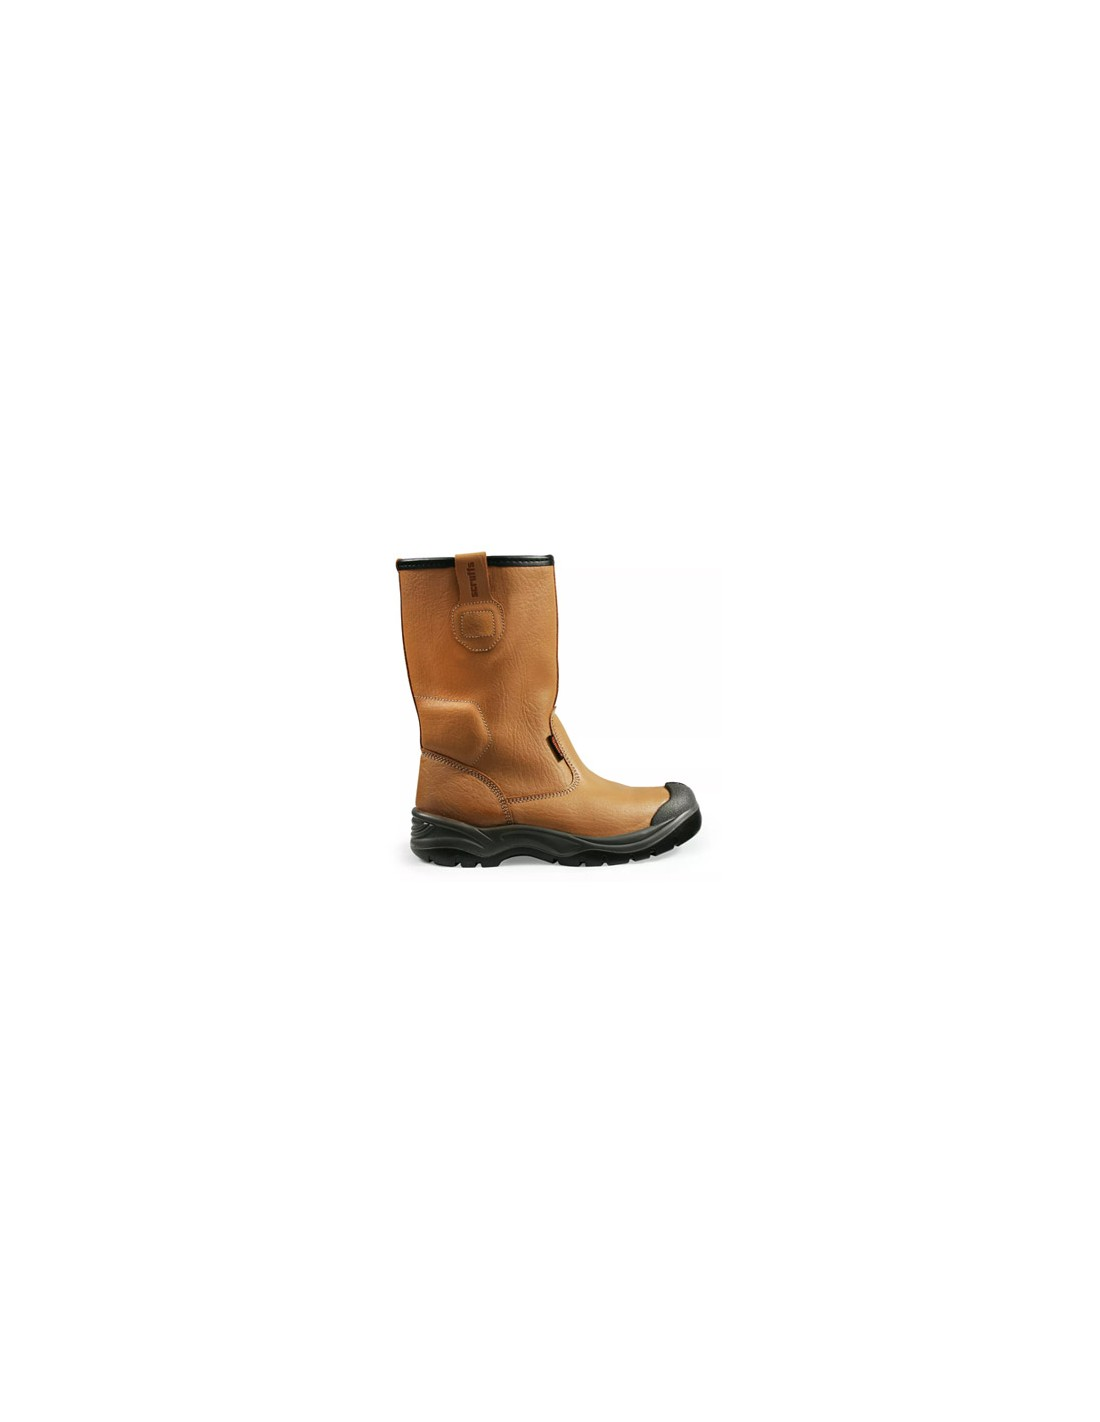 Scruffs Gravity Safety Rigger Tan Boots